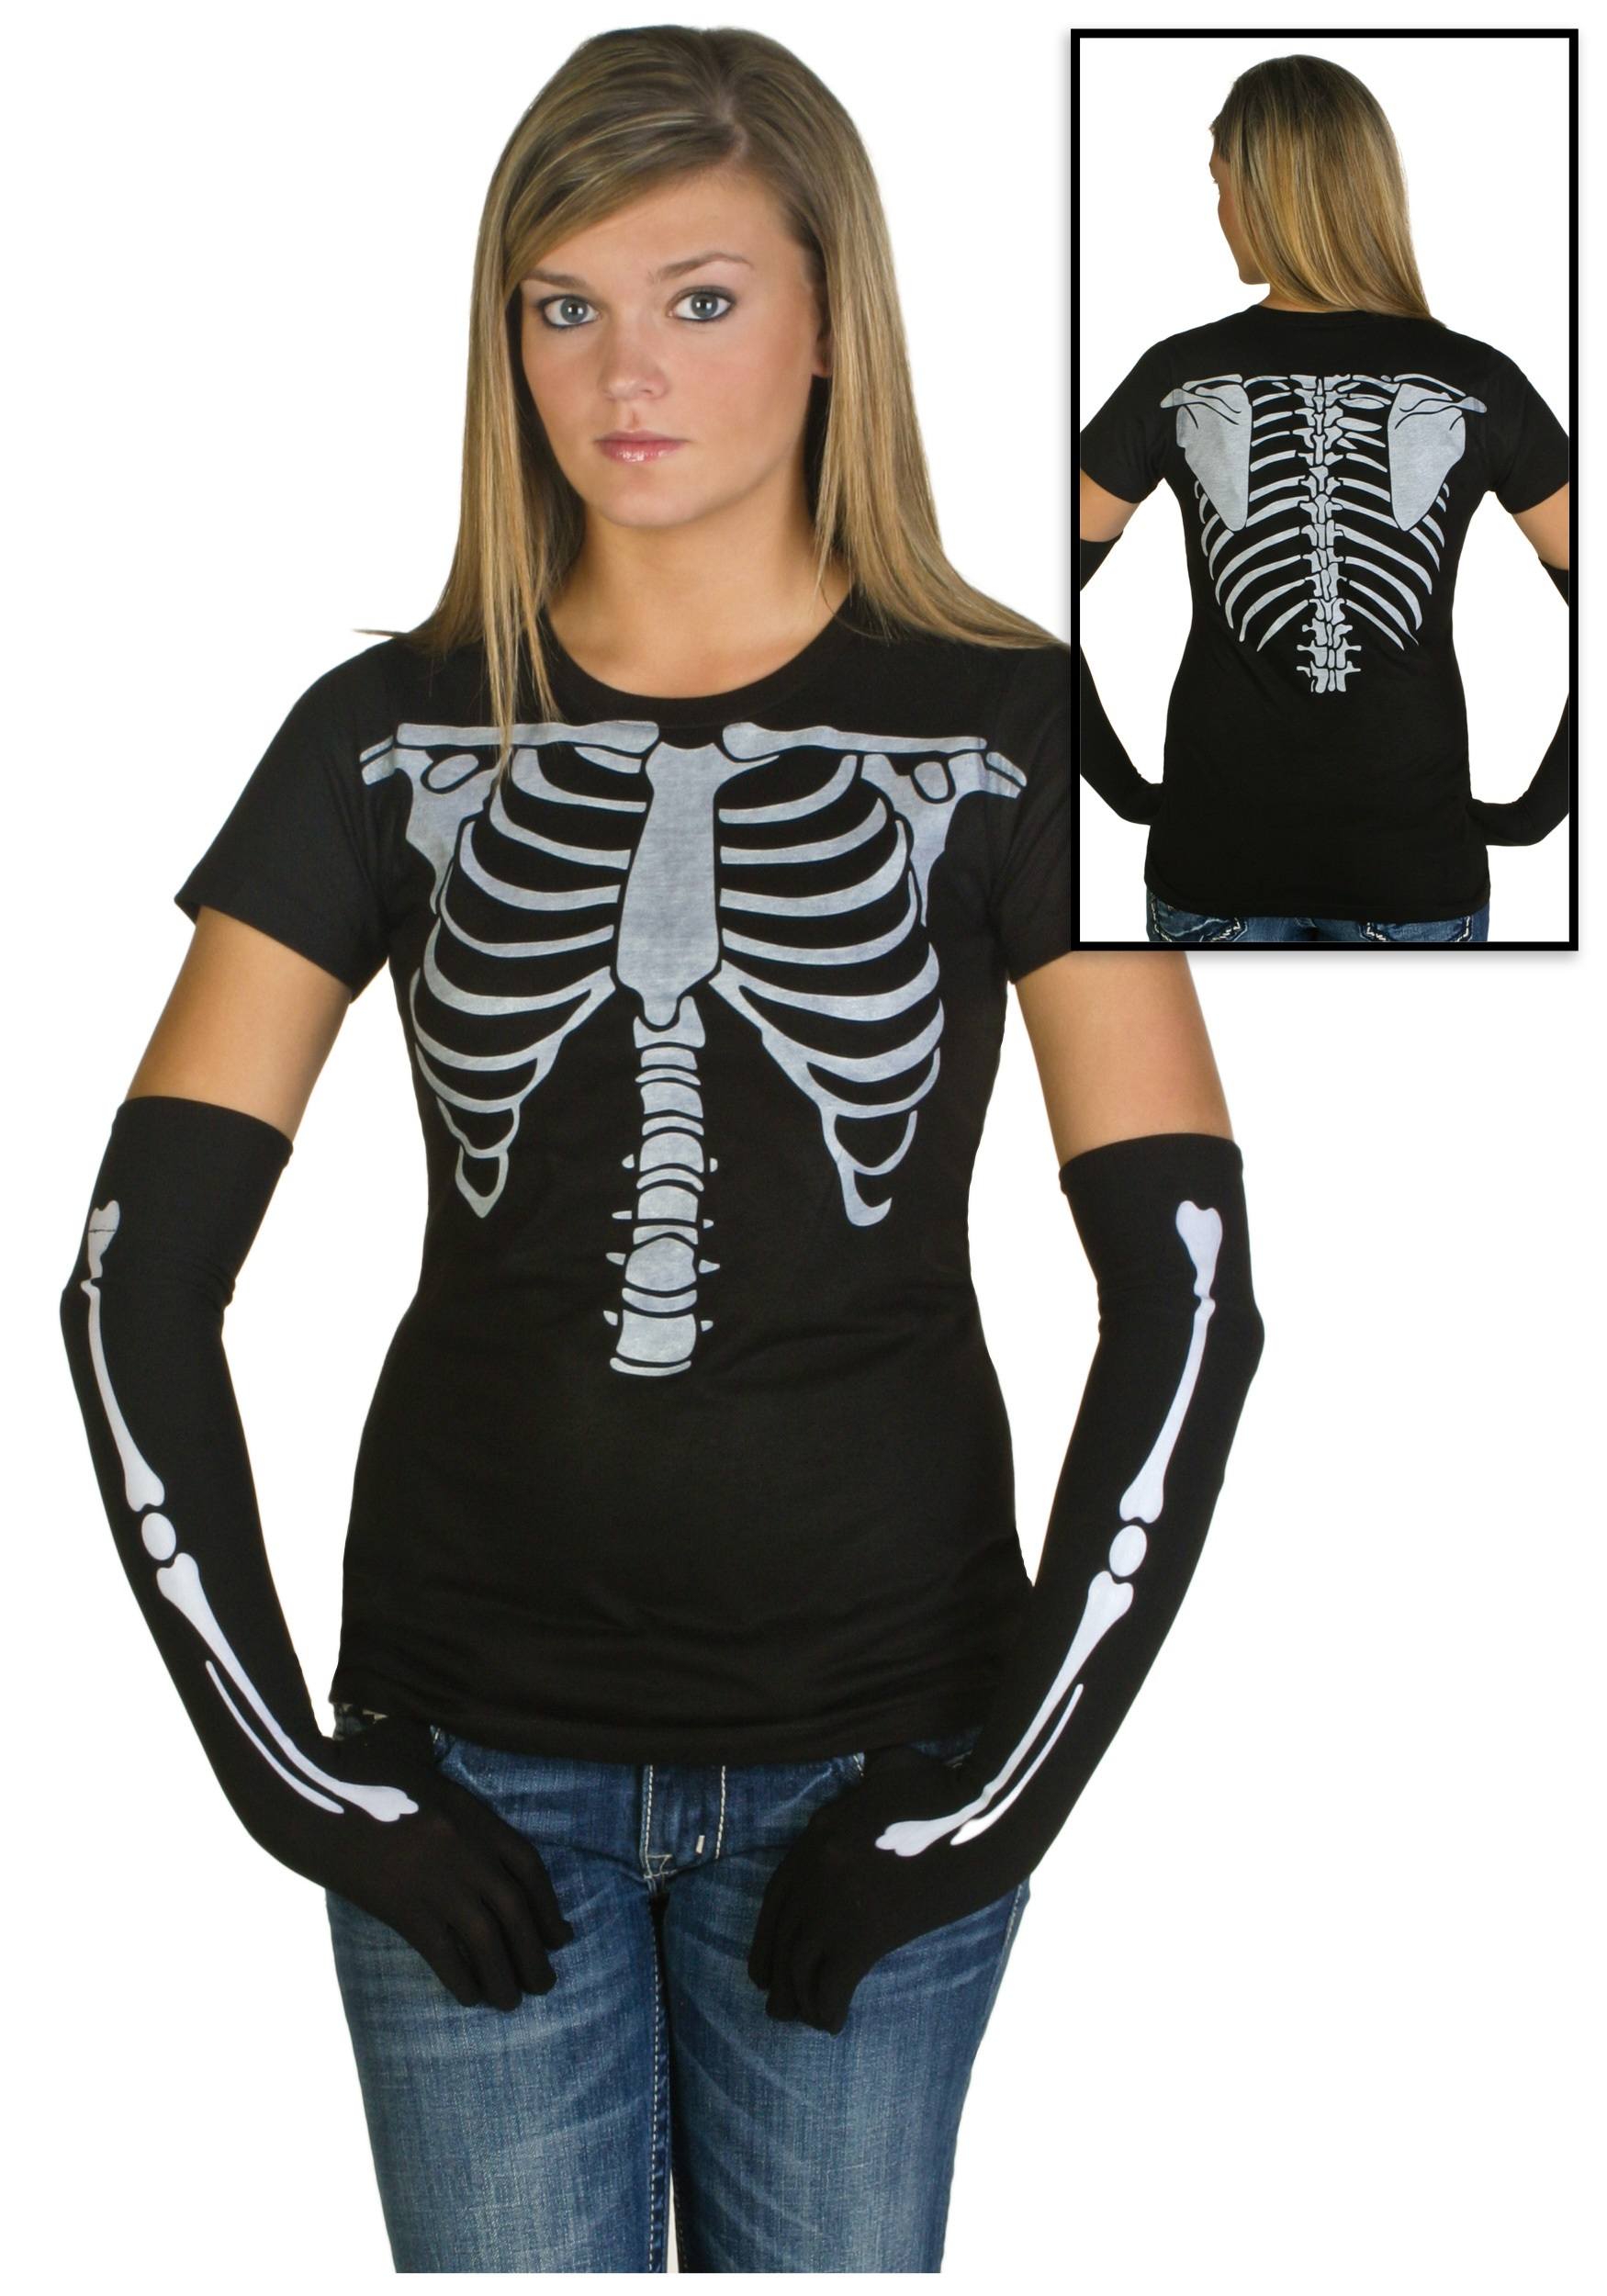 Skull clothing for women